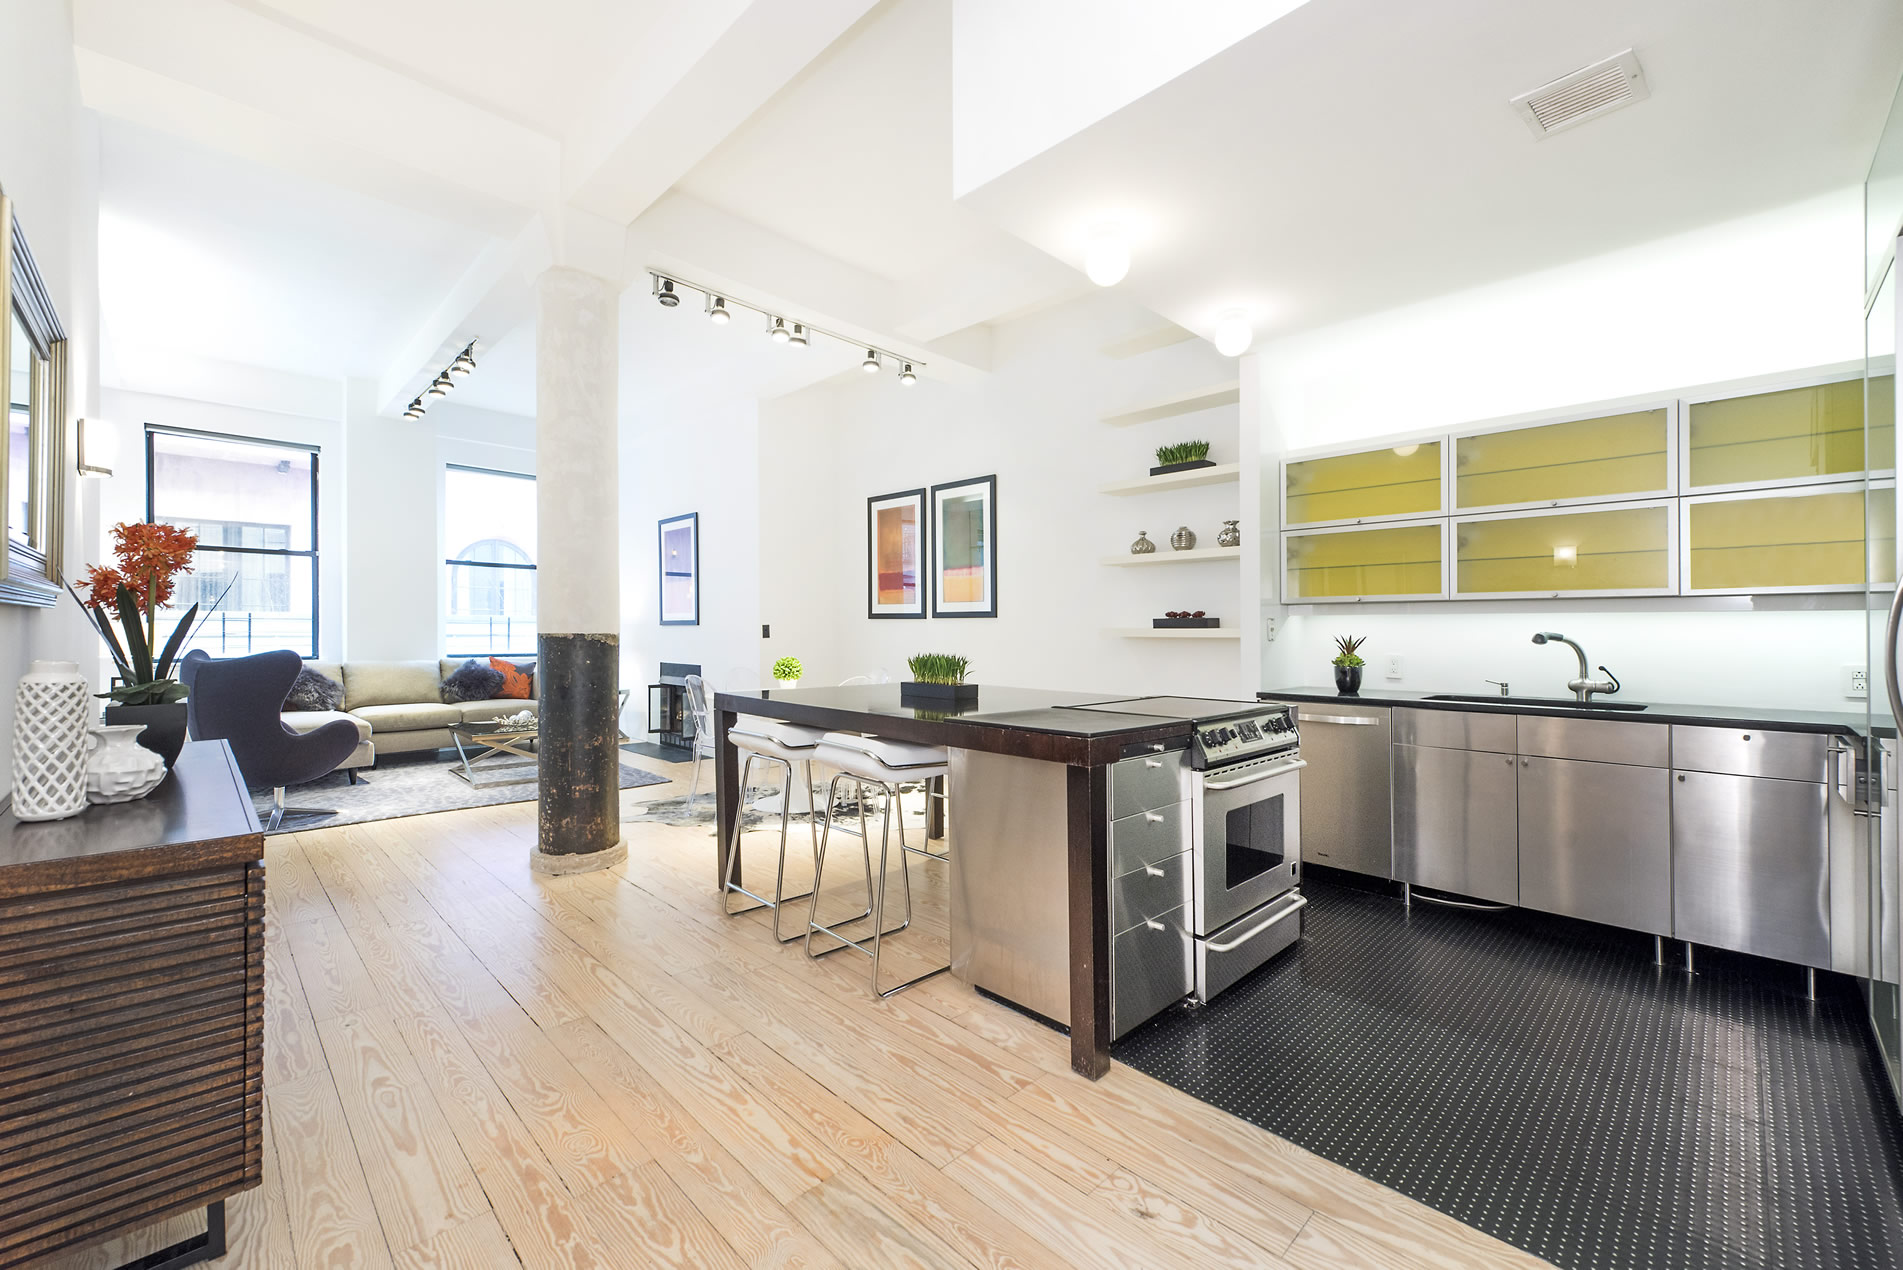 How to Sell an Apartment in New York City